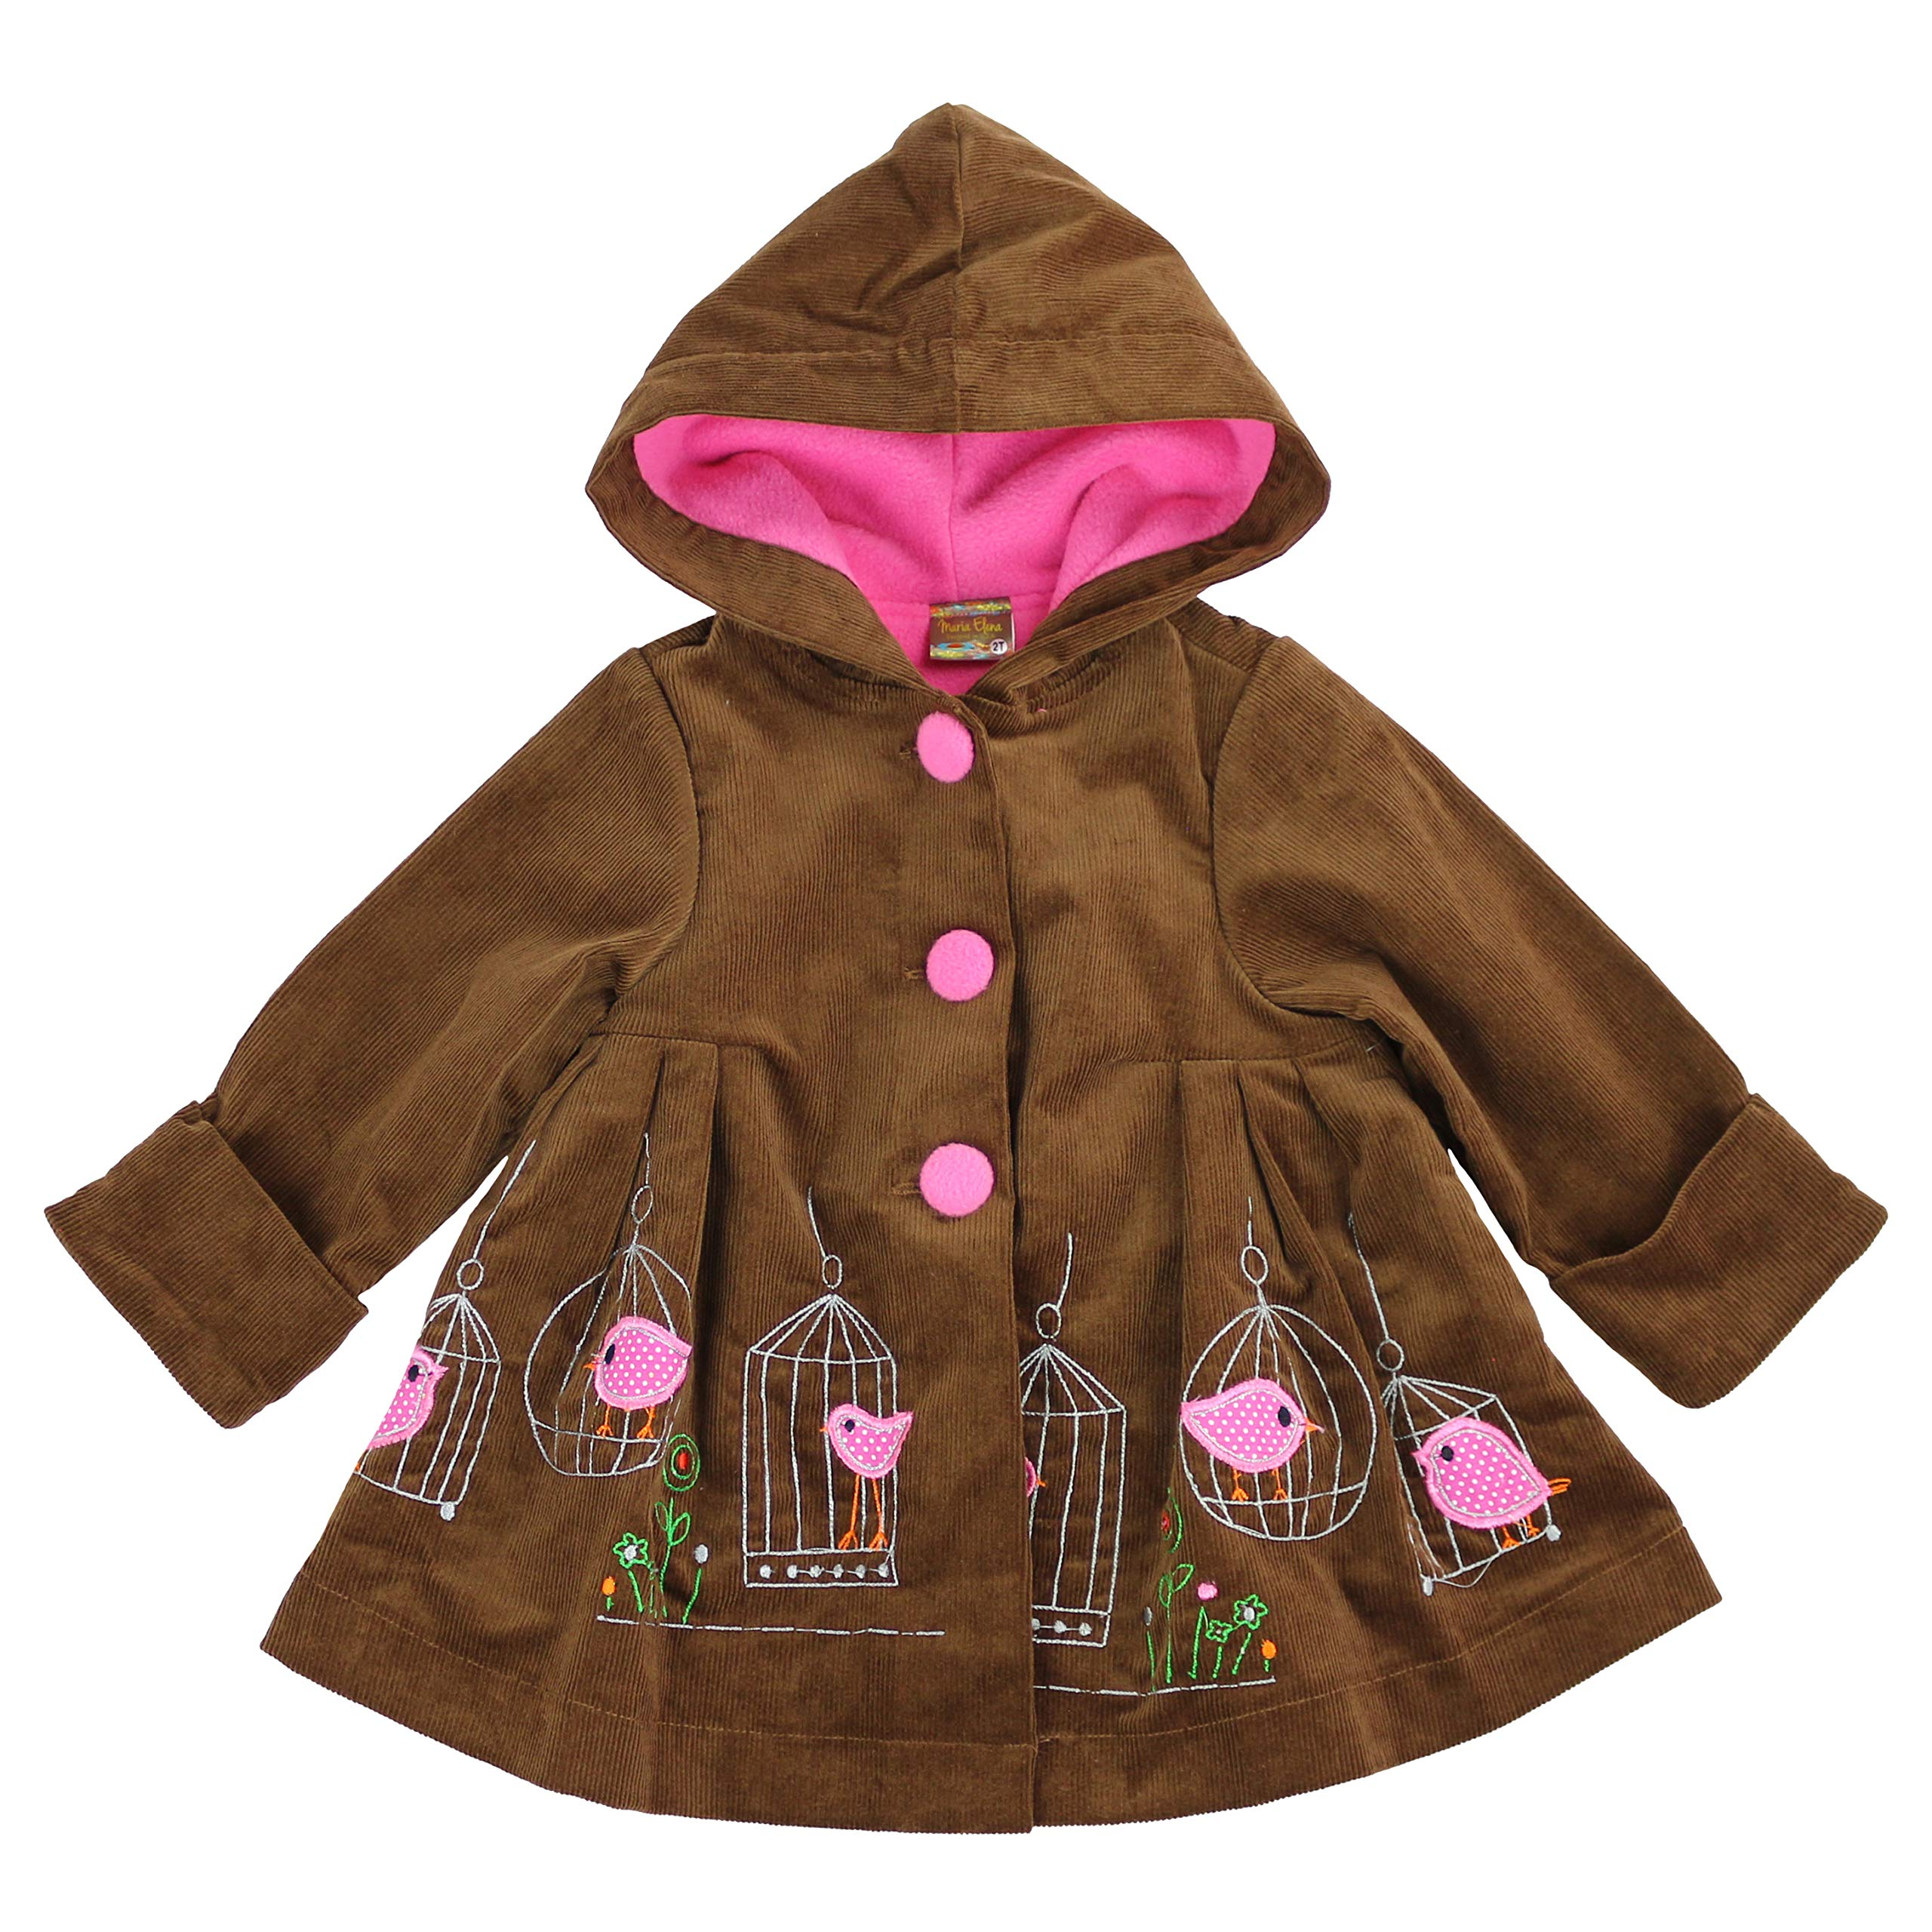 Maria Elena - Toddlers and Girls Vintage Imperial Birdcage Corduroy Swing Coat in Brown-Pink 6